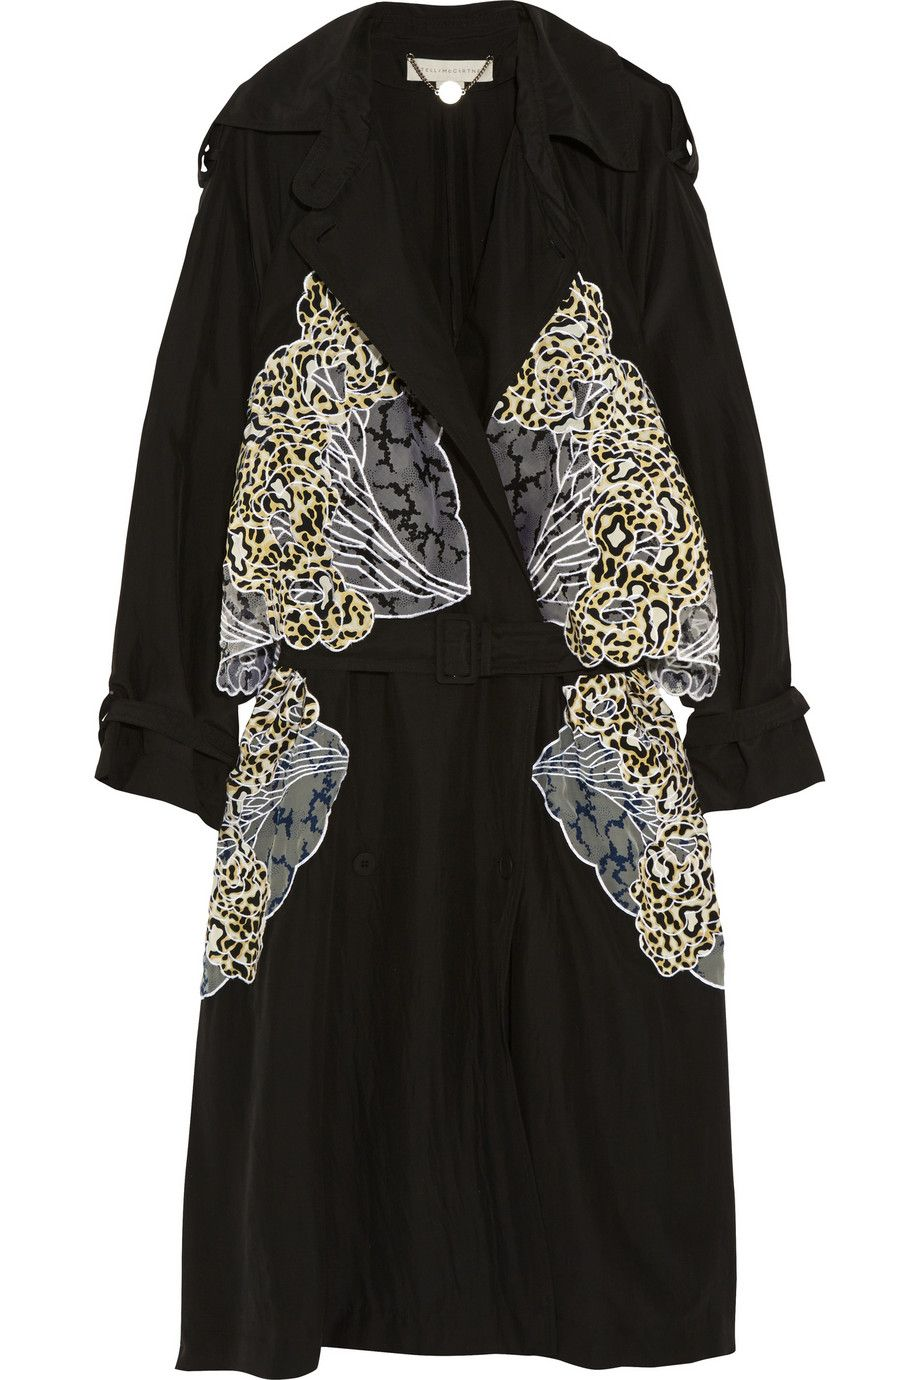 STELLA MCCARTNEY Gabriella Appliquéd Silk Trench Coat. #stellamccartney #cloth #coat